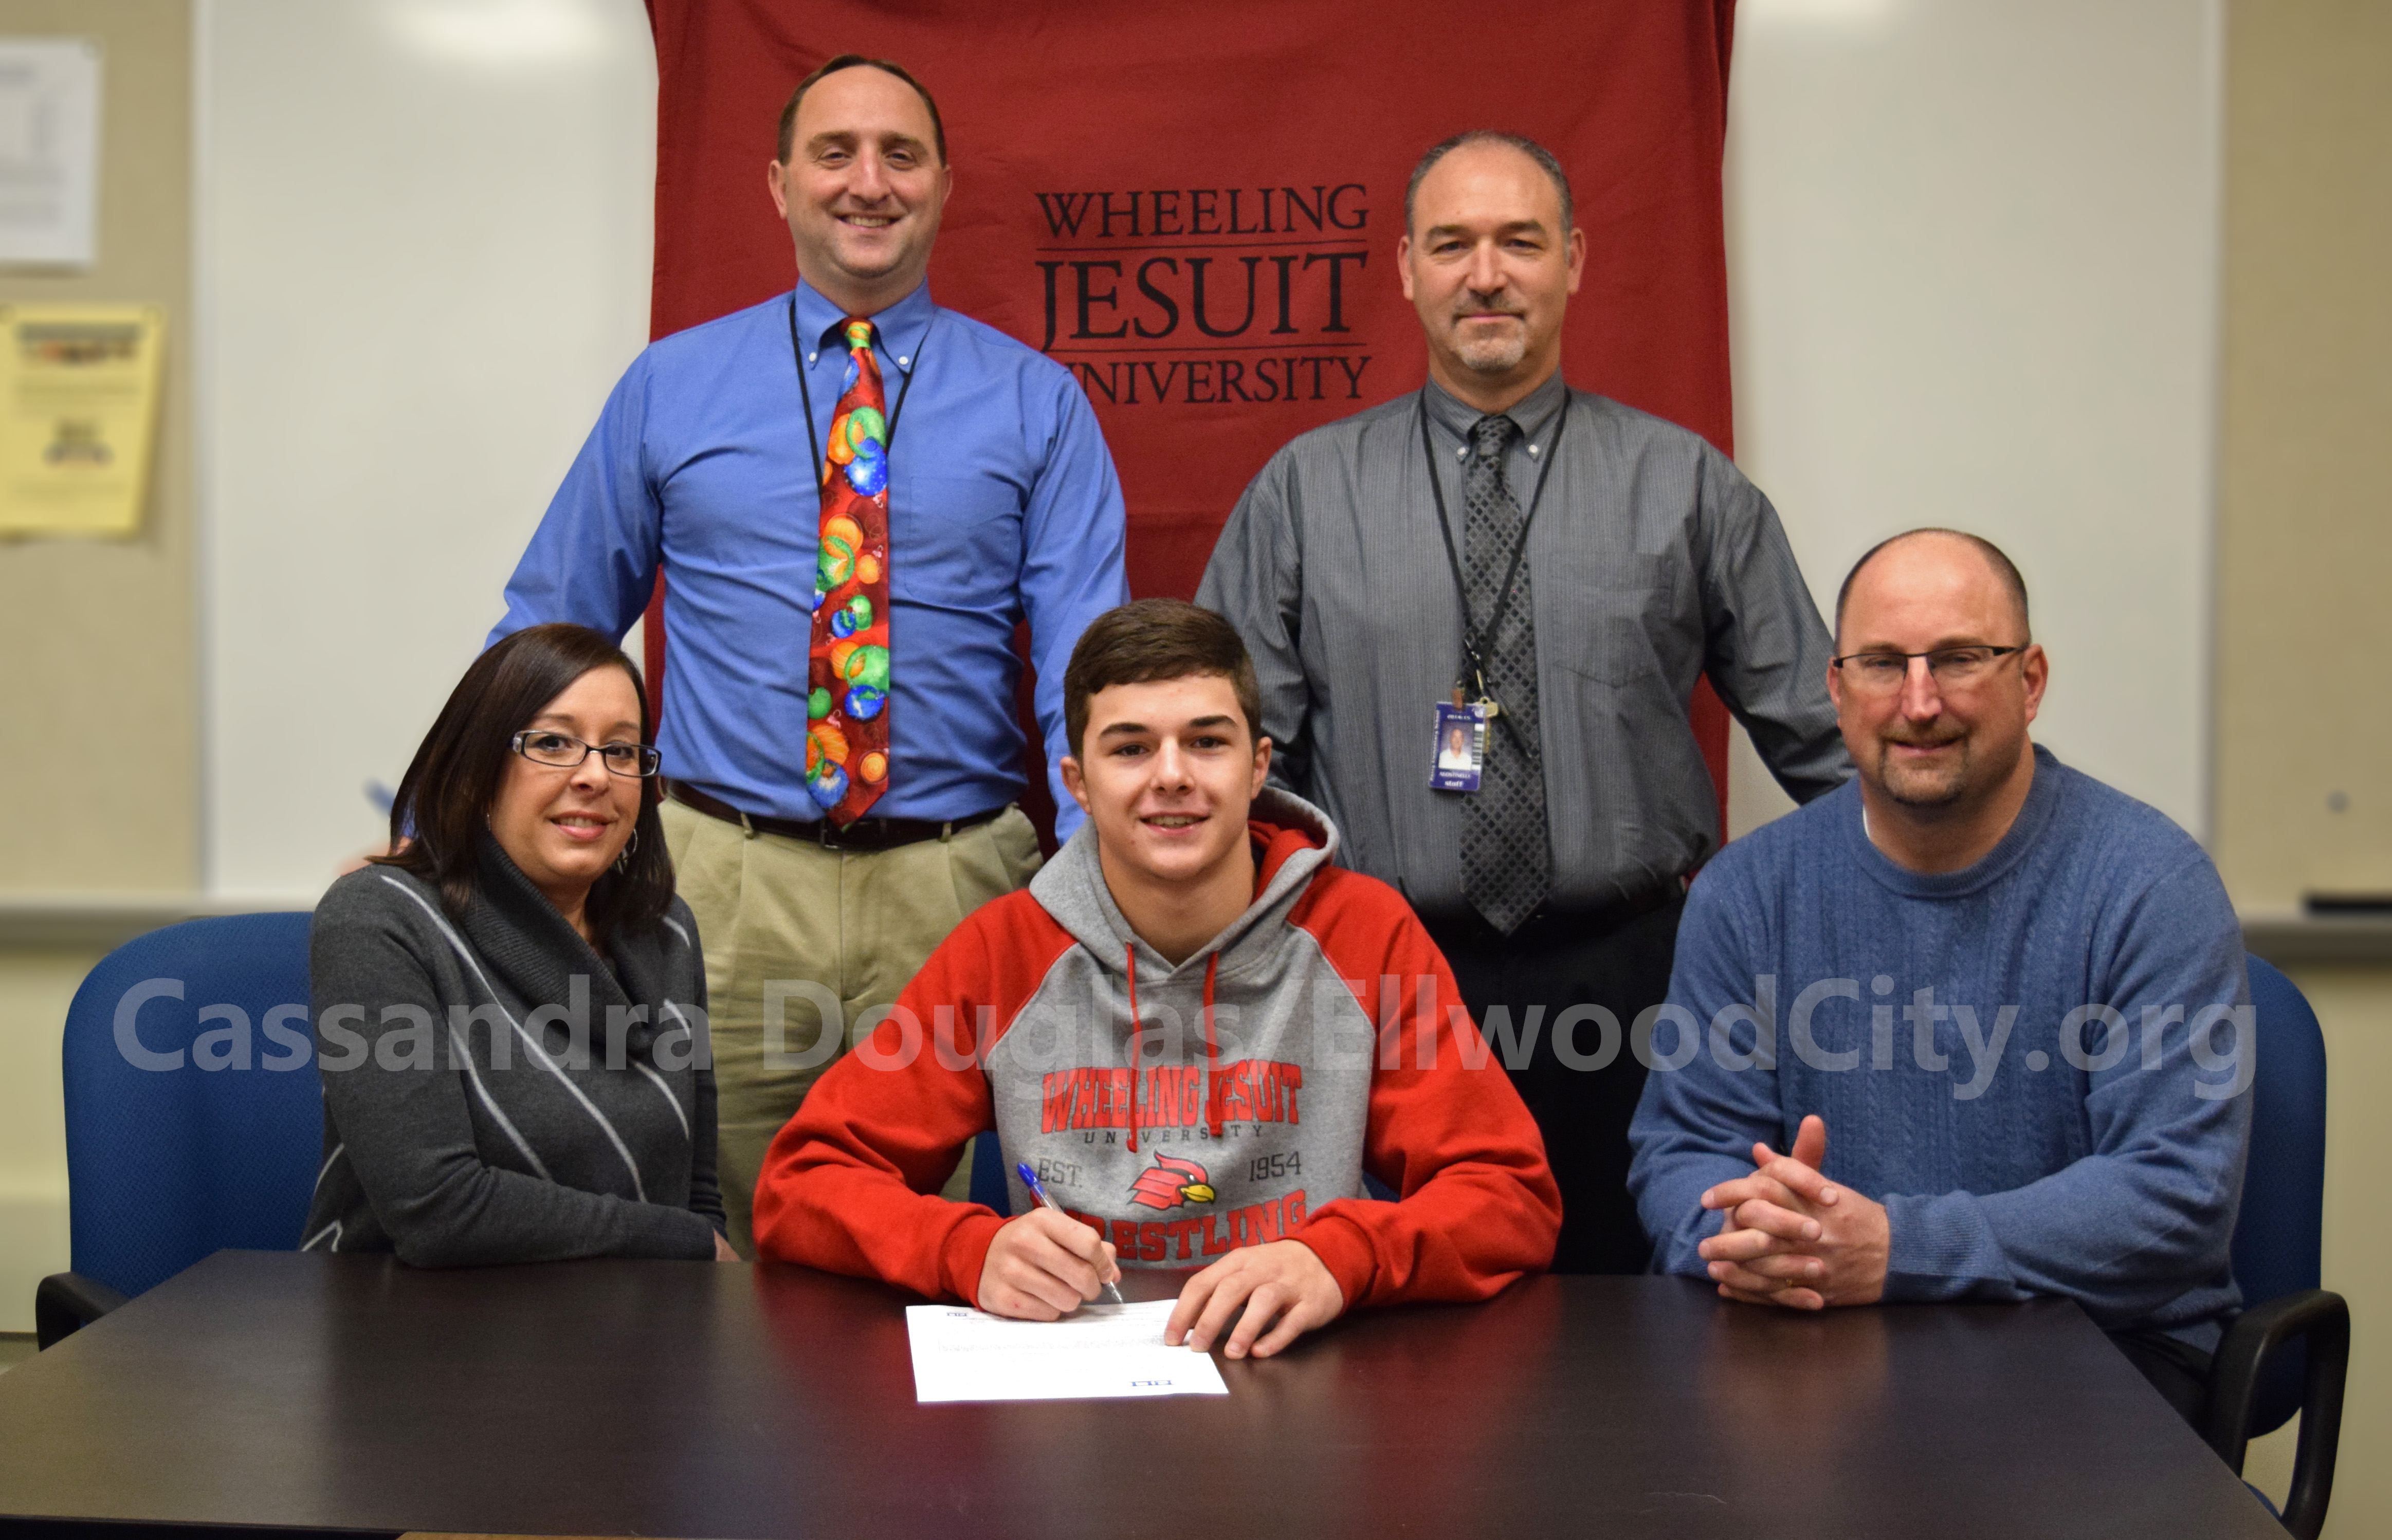 Tyler poses with his parents and school officials.